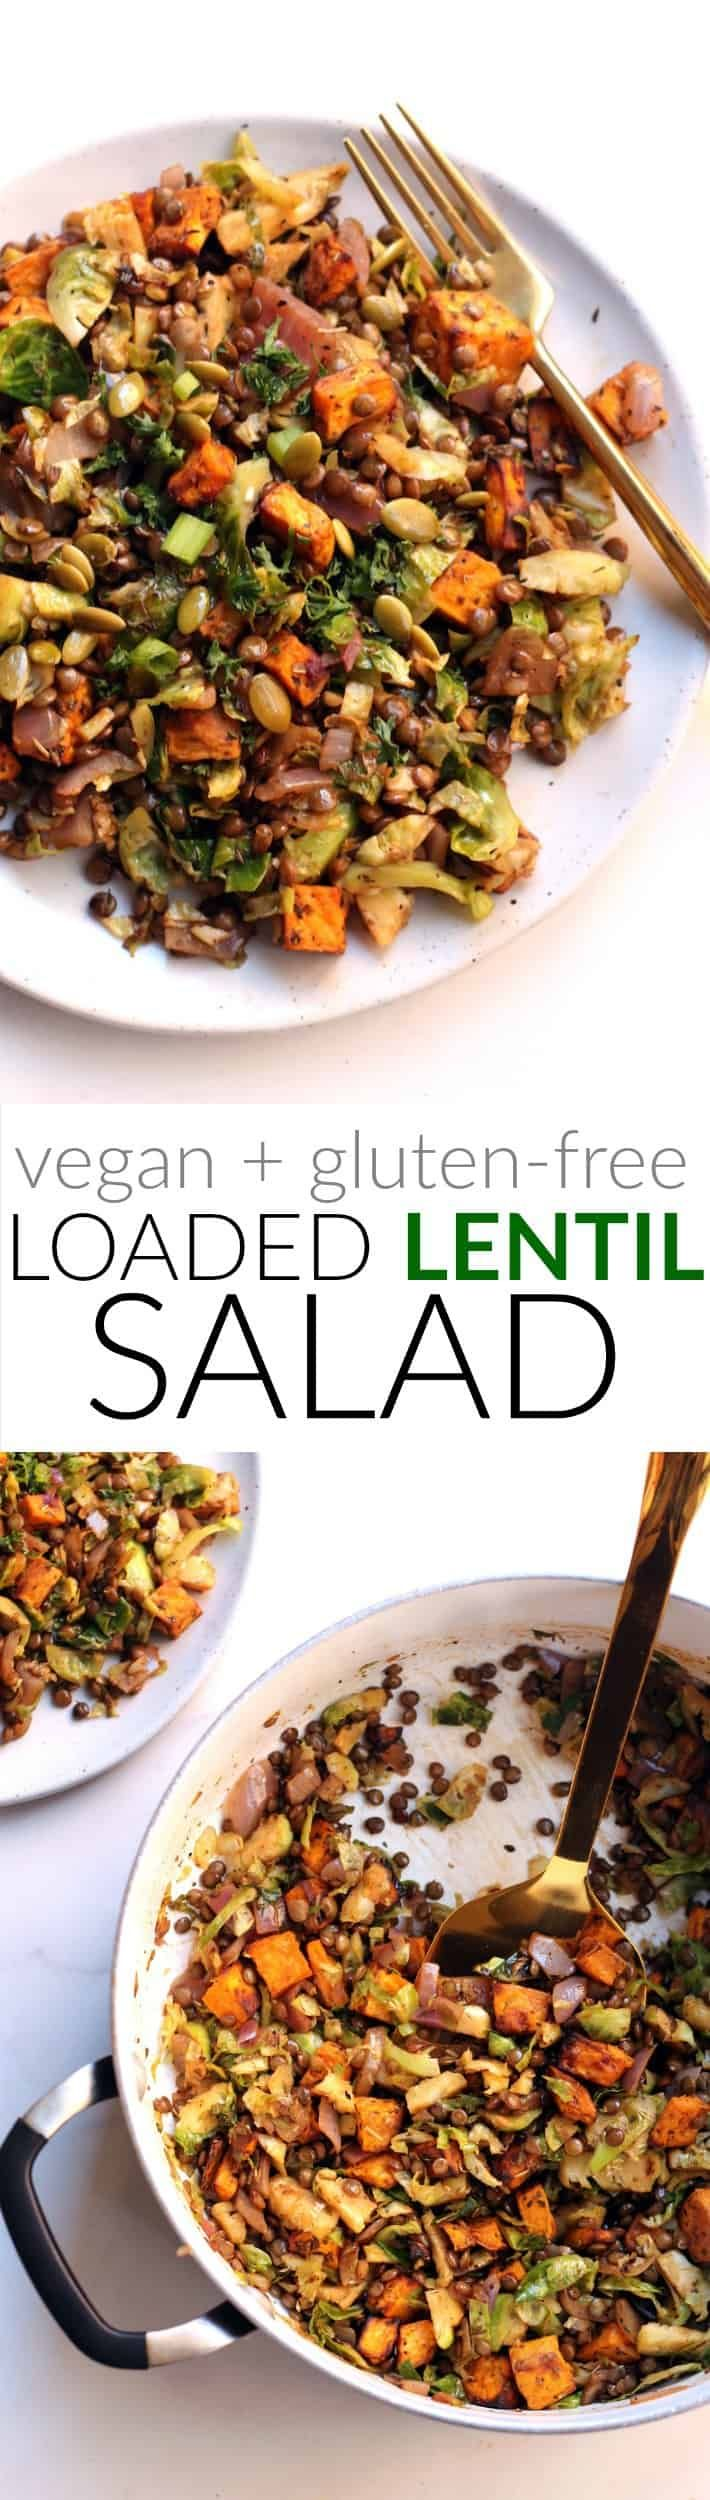 Loaded Lentil Salad This hearty Loaded Lentil Salad is packed with protein, fiber, and warm veggies like roasted sweet potatoes, red onion, and Brussels sprouts.